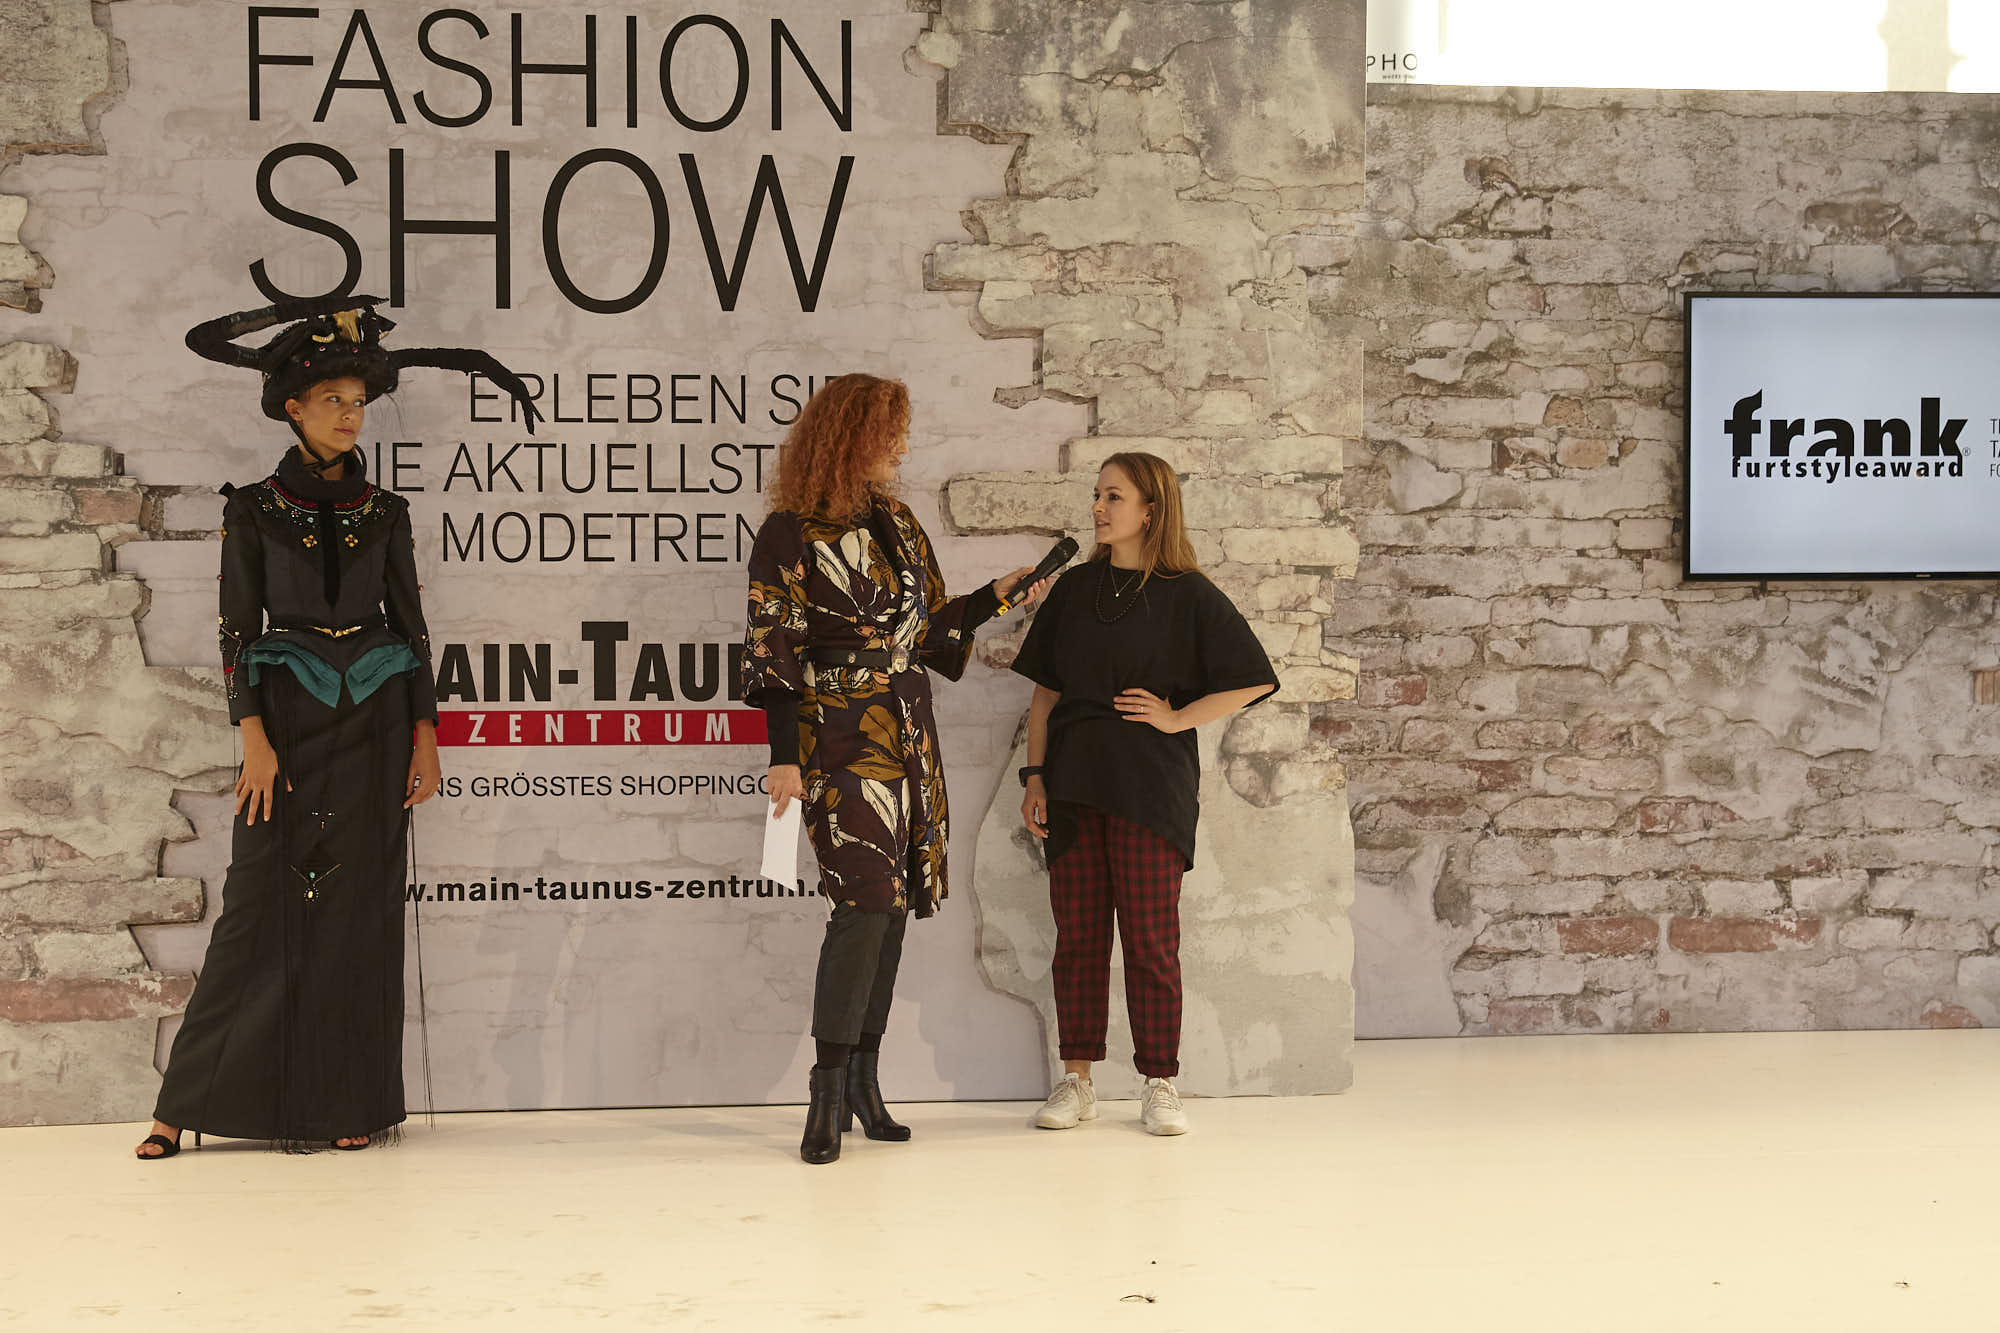 reputable site 2e0e9 afe48 The winners of the FRANKfurtstyleaward presented winning ...